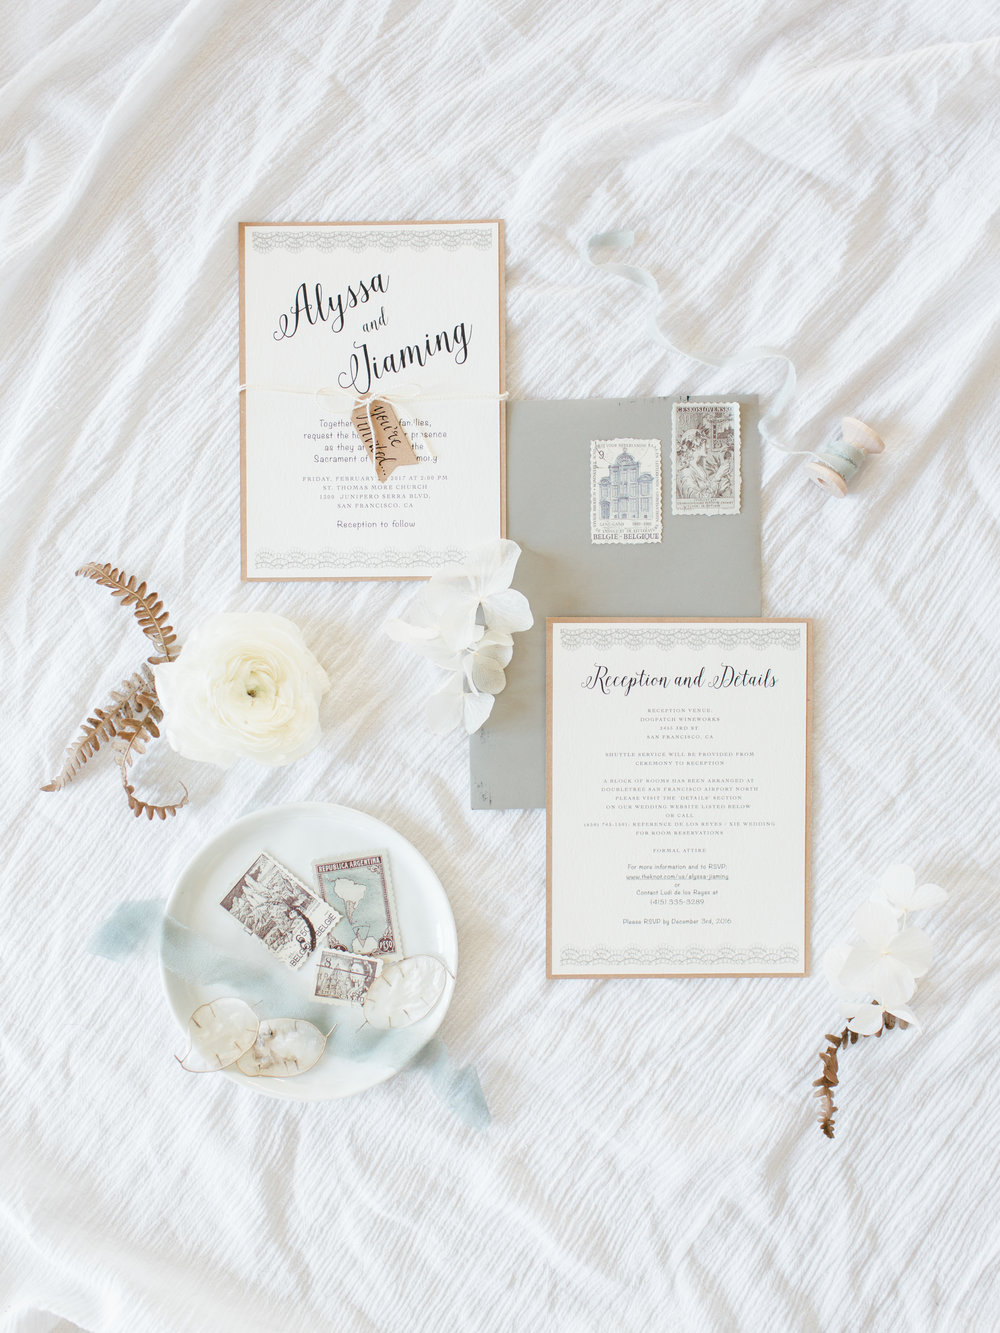 Invitation Suite - Fine Art Wedding Photography Jenny Soi